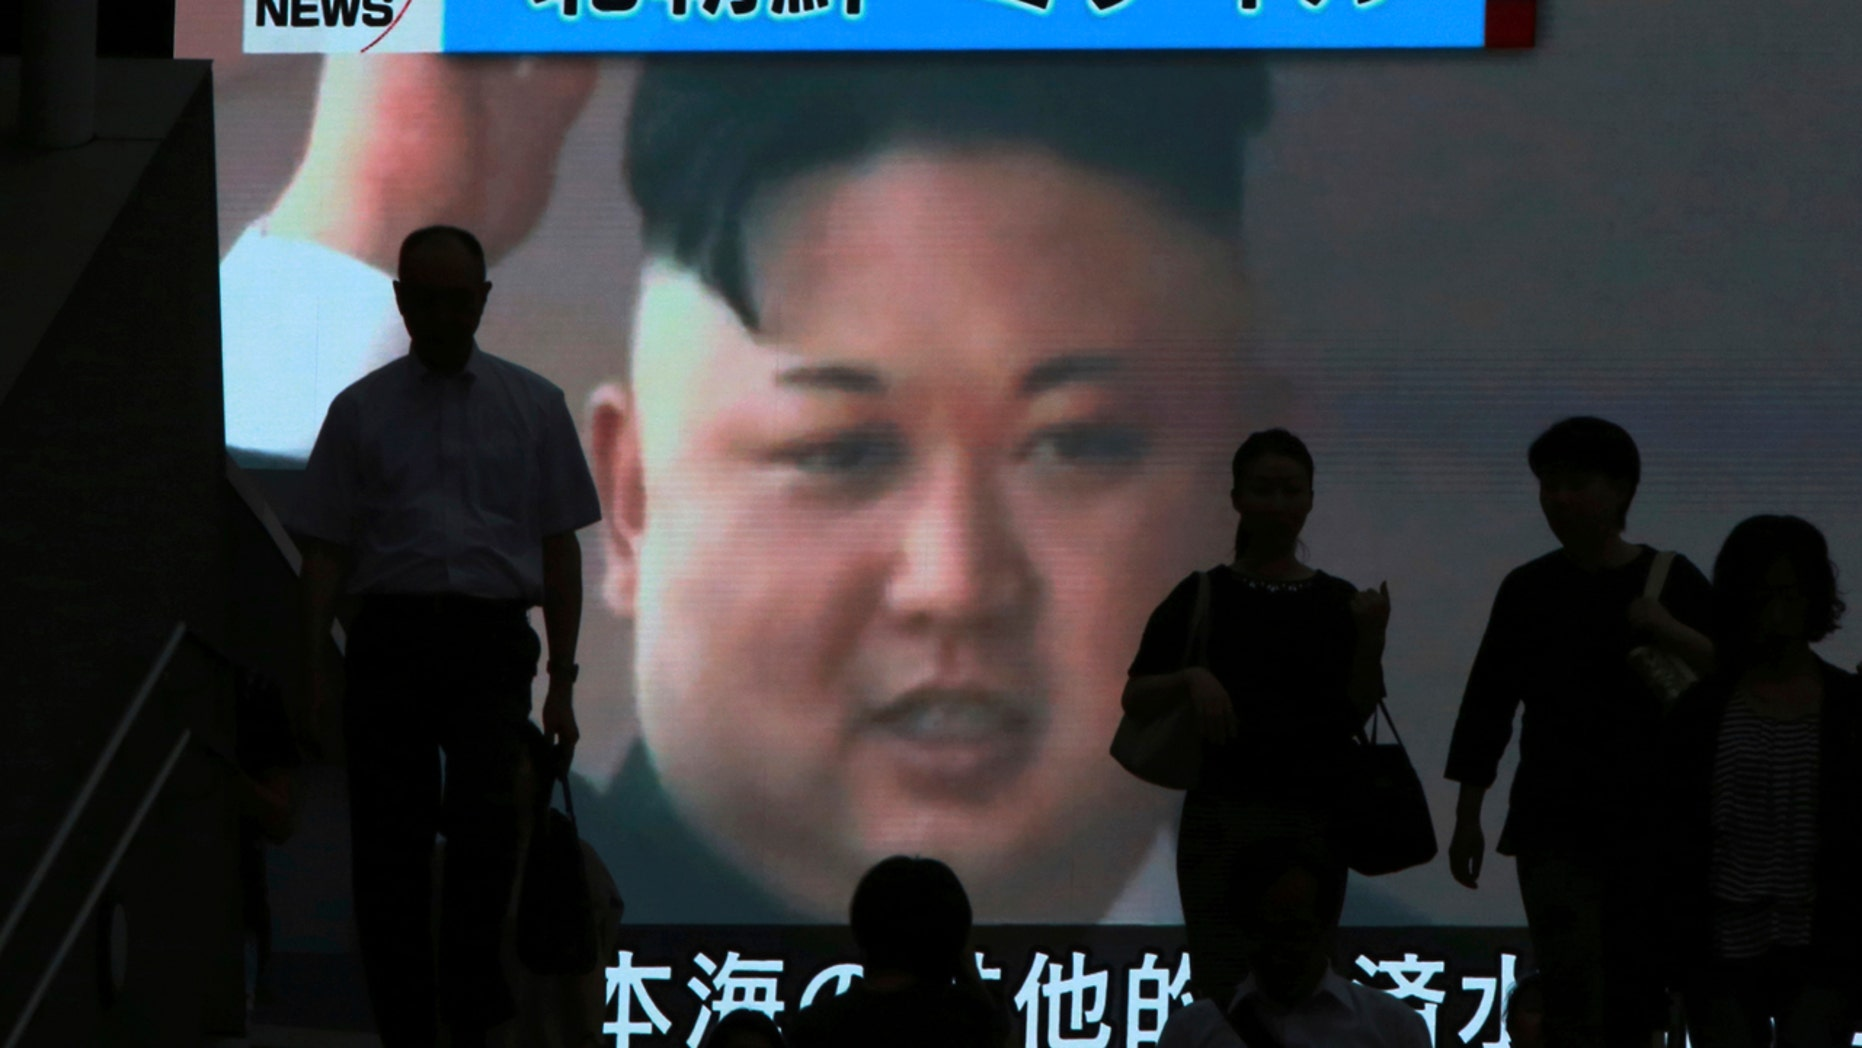 People in Tokyo walk past a TV news showing an image of North Korean leader Kim Jong Un.